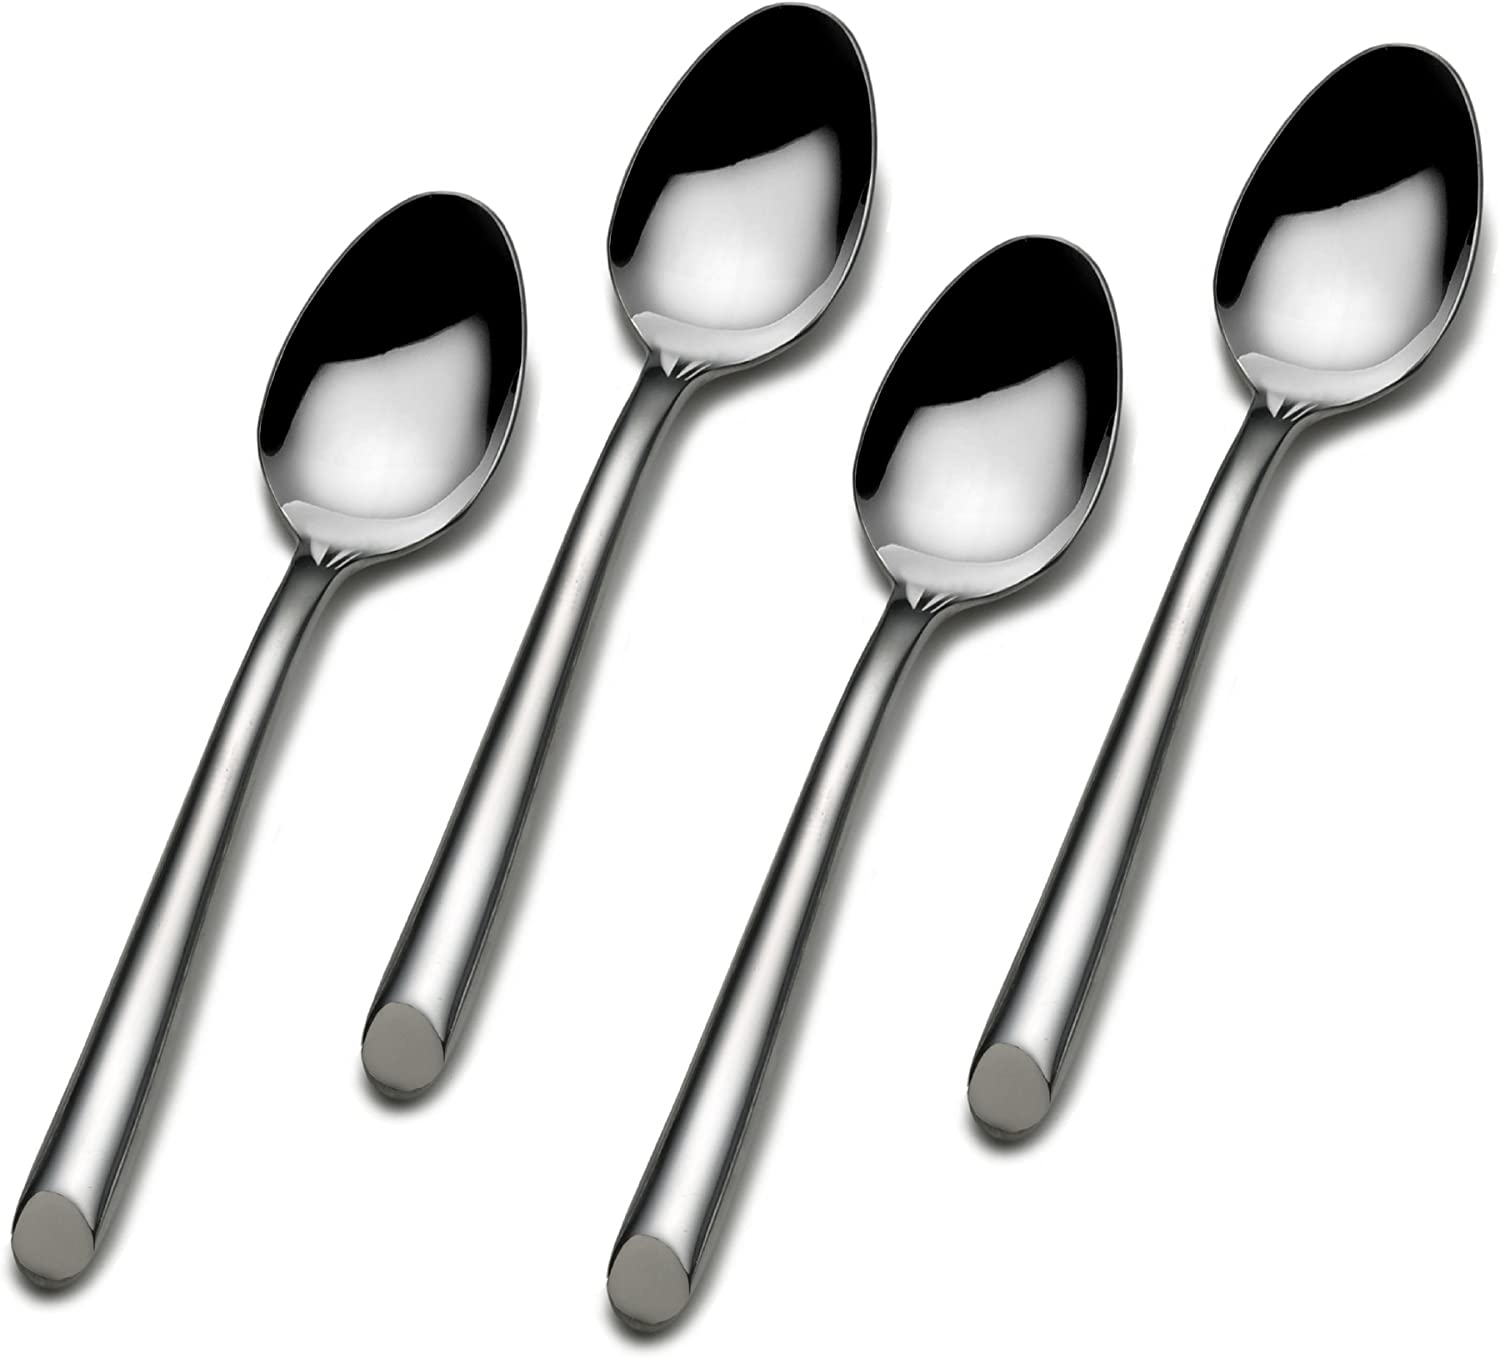 Towle Living Wave Stainless Steel Demi Spoon, Set of 4